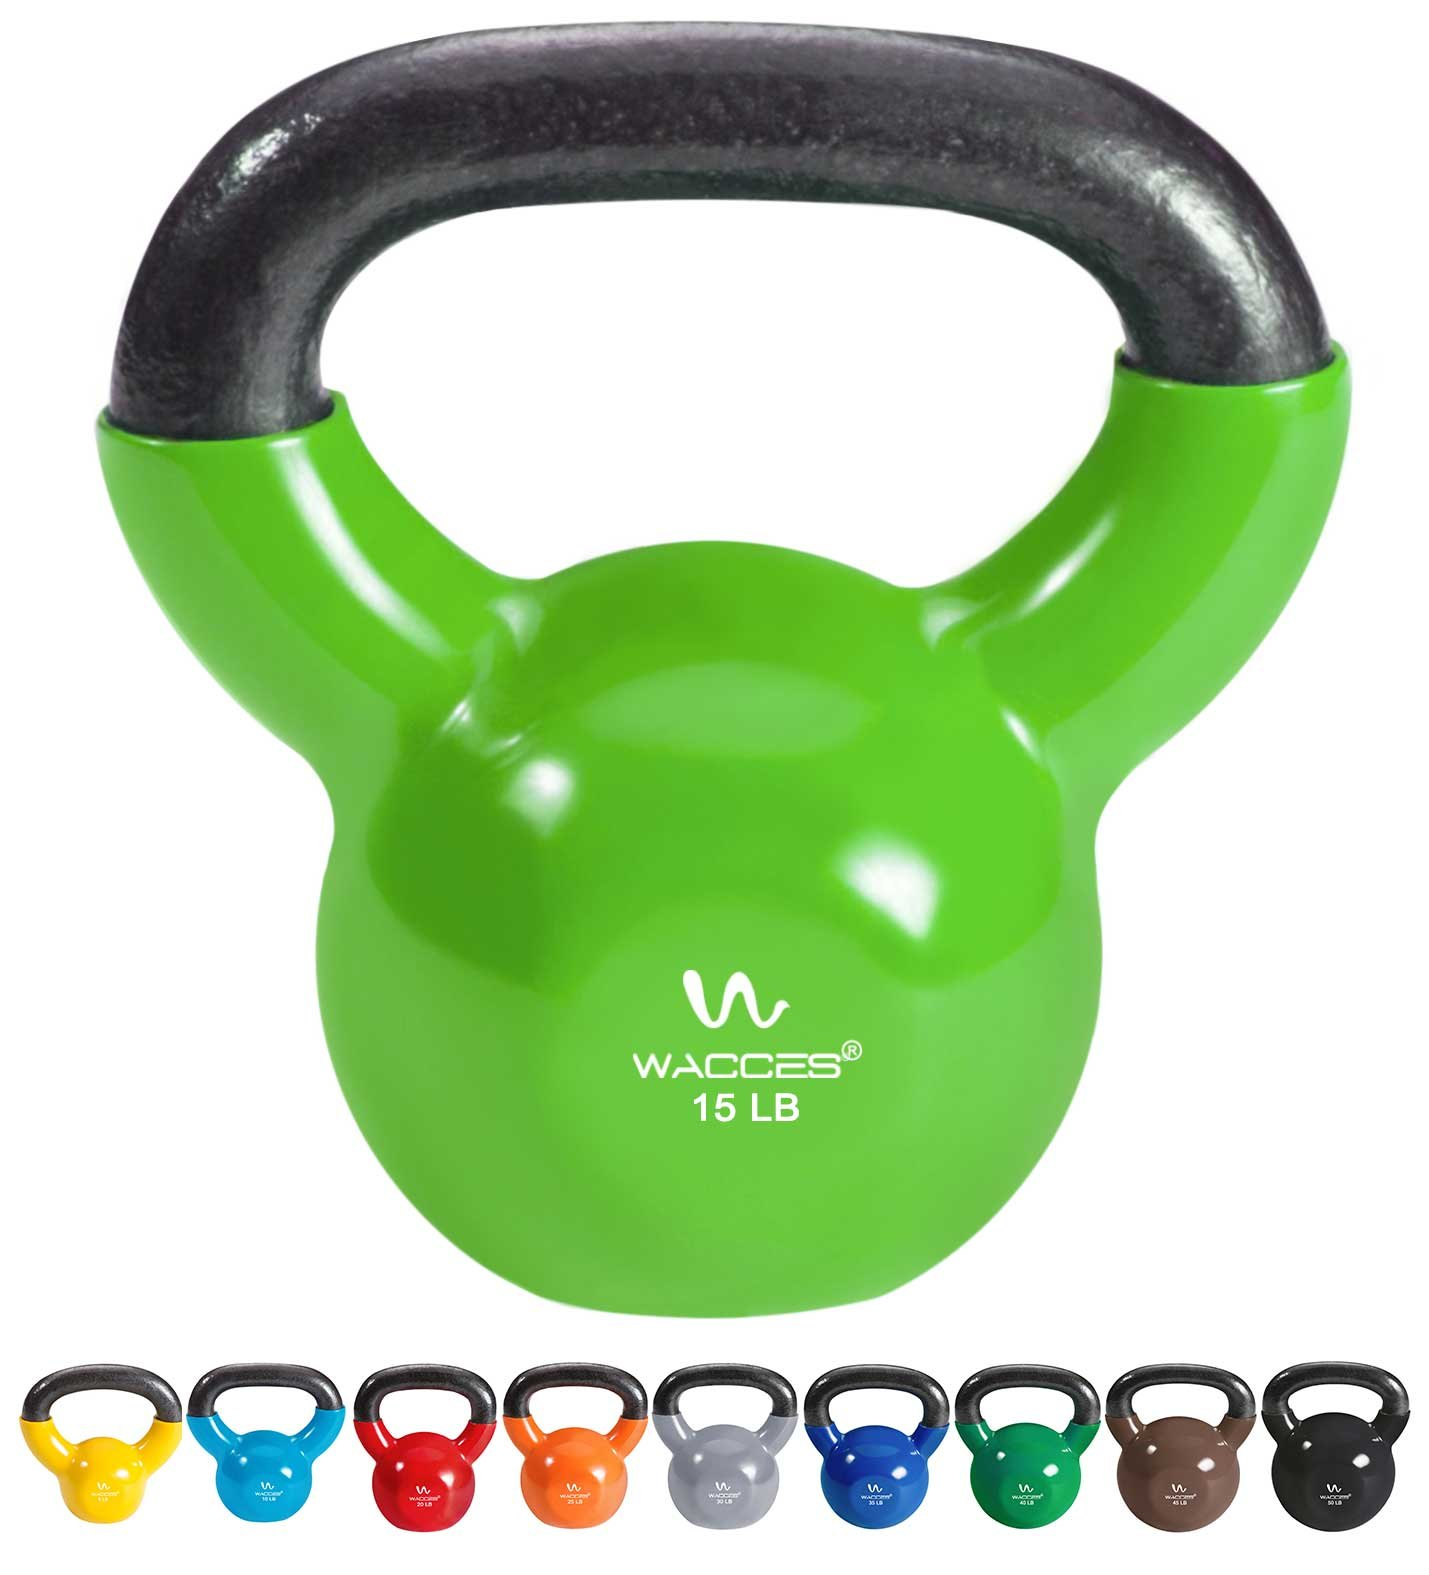 Wacces Single Vinyl Dipped Kettlebell for Croos Training, Home Exercise, Workout 15LB